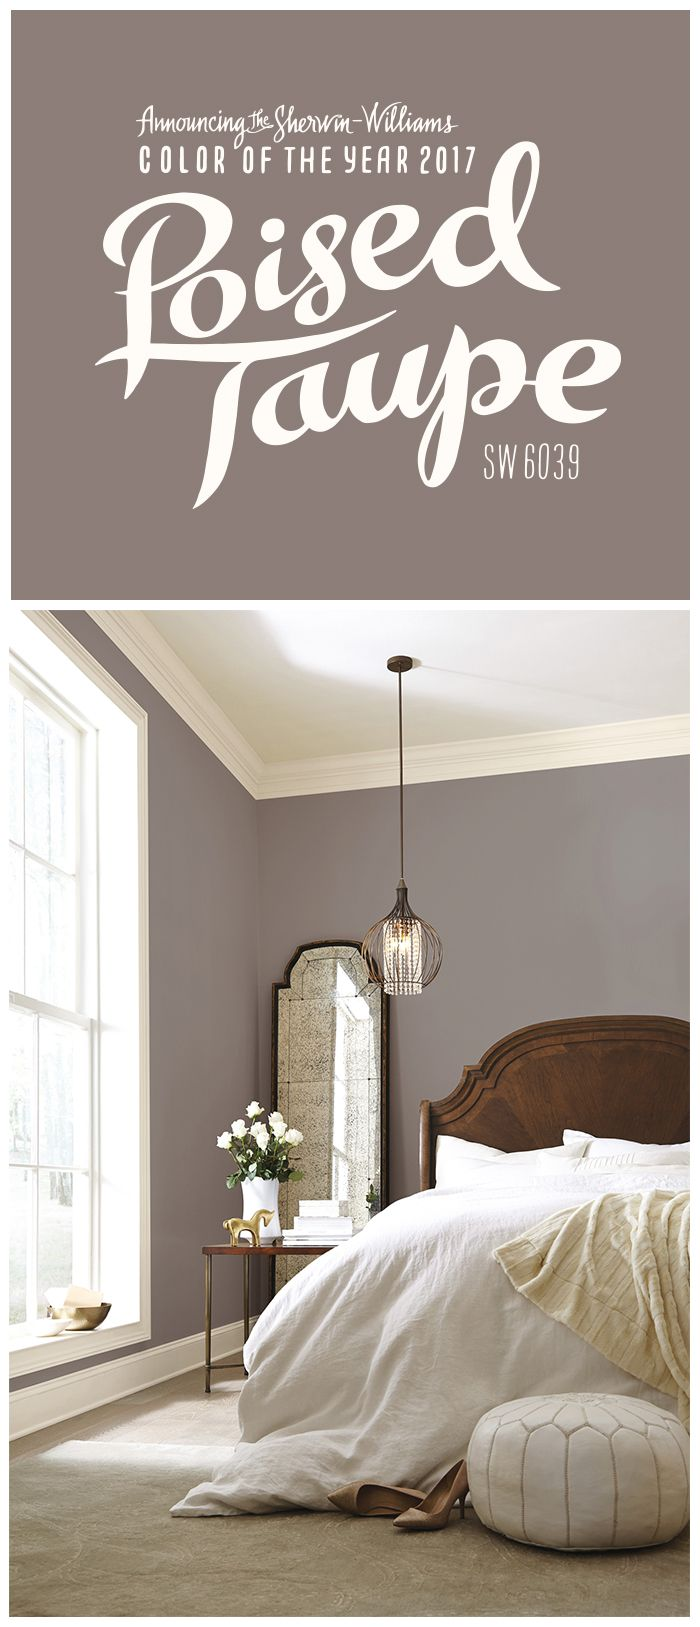 Interior paint ideas bedroom - We Re Thrilled About Our 2017 Color Of The Year Poised Taupe Sw 6039